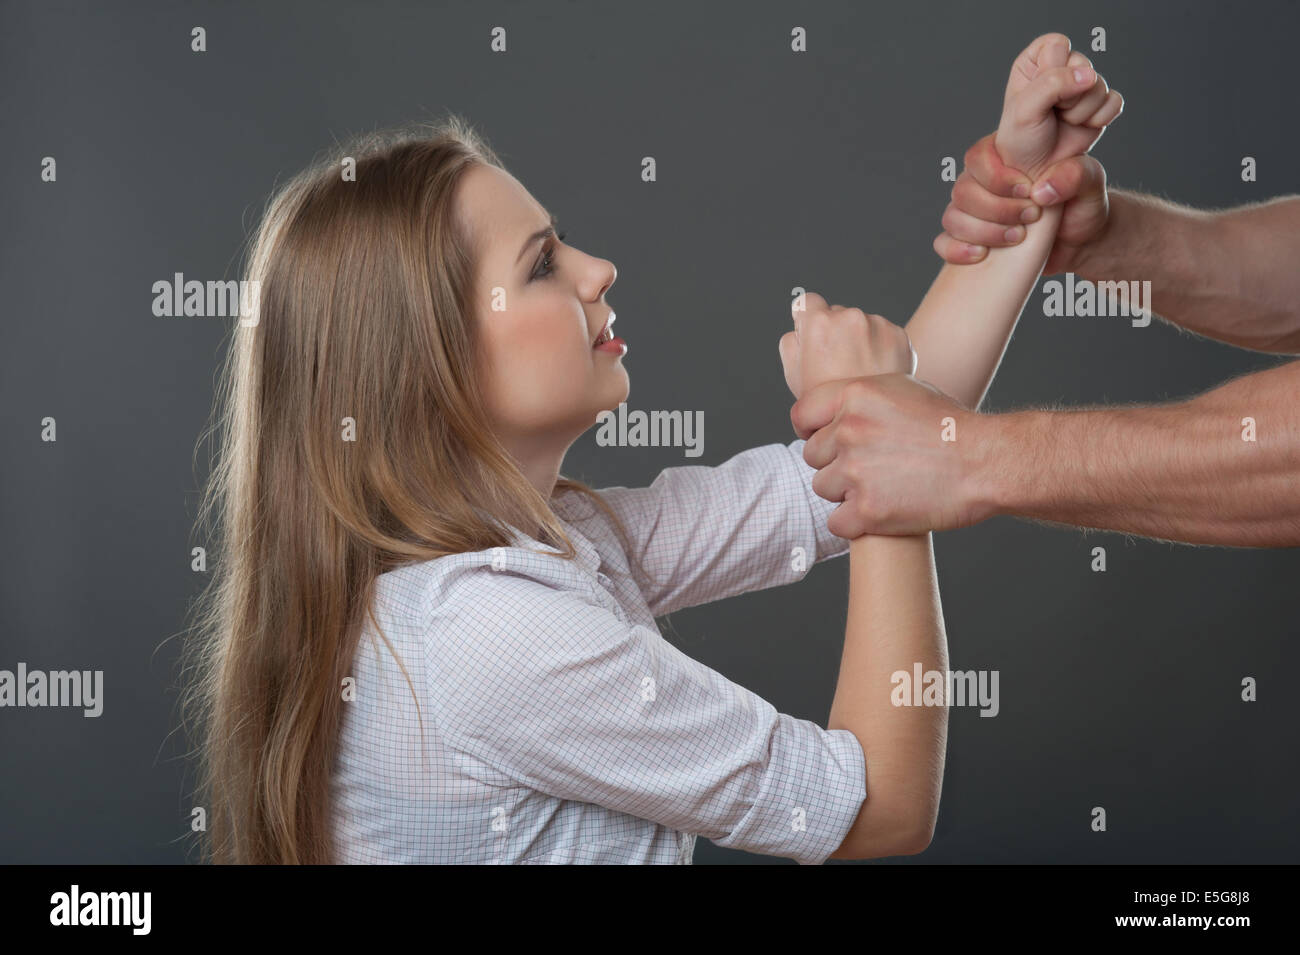 Violence of man against woman - Stock Image